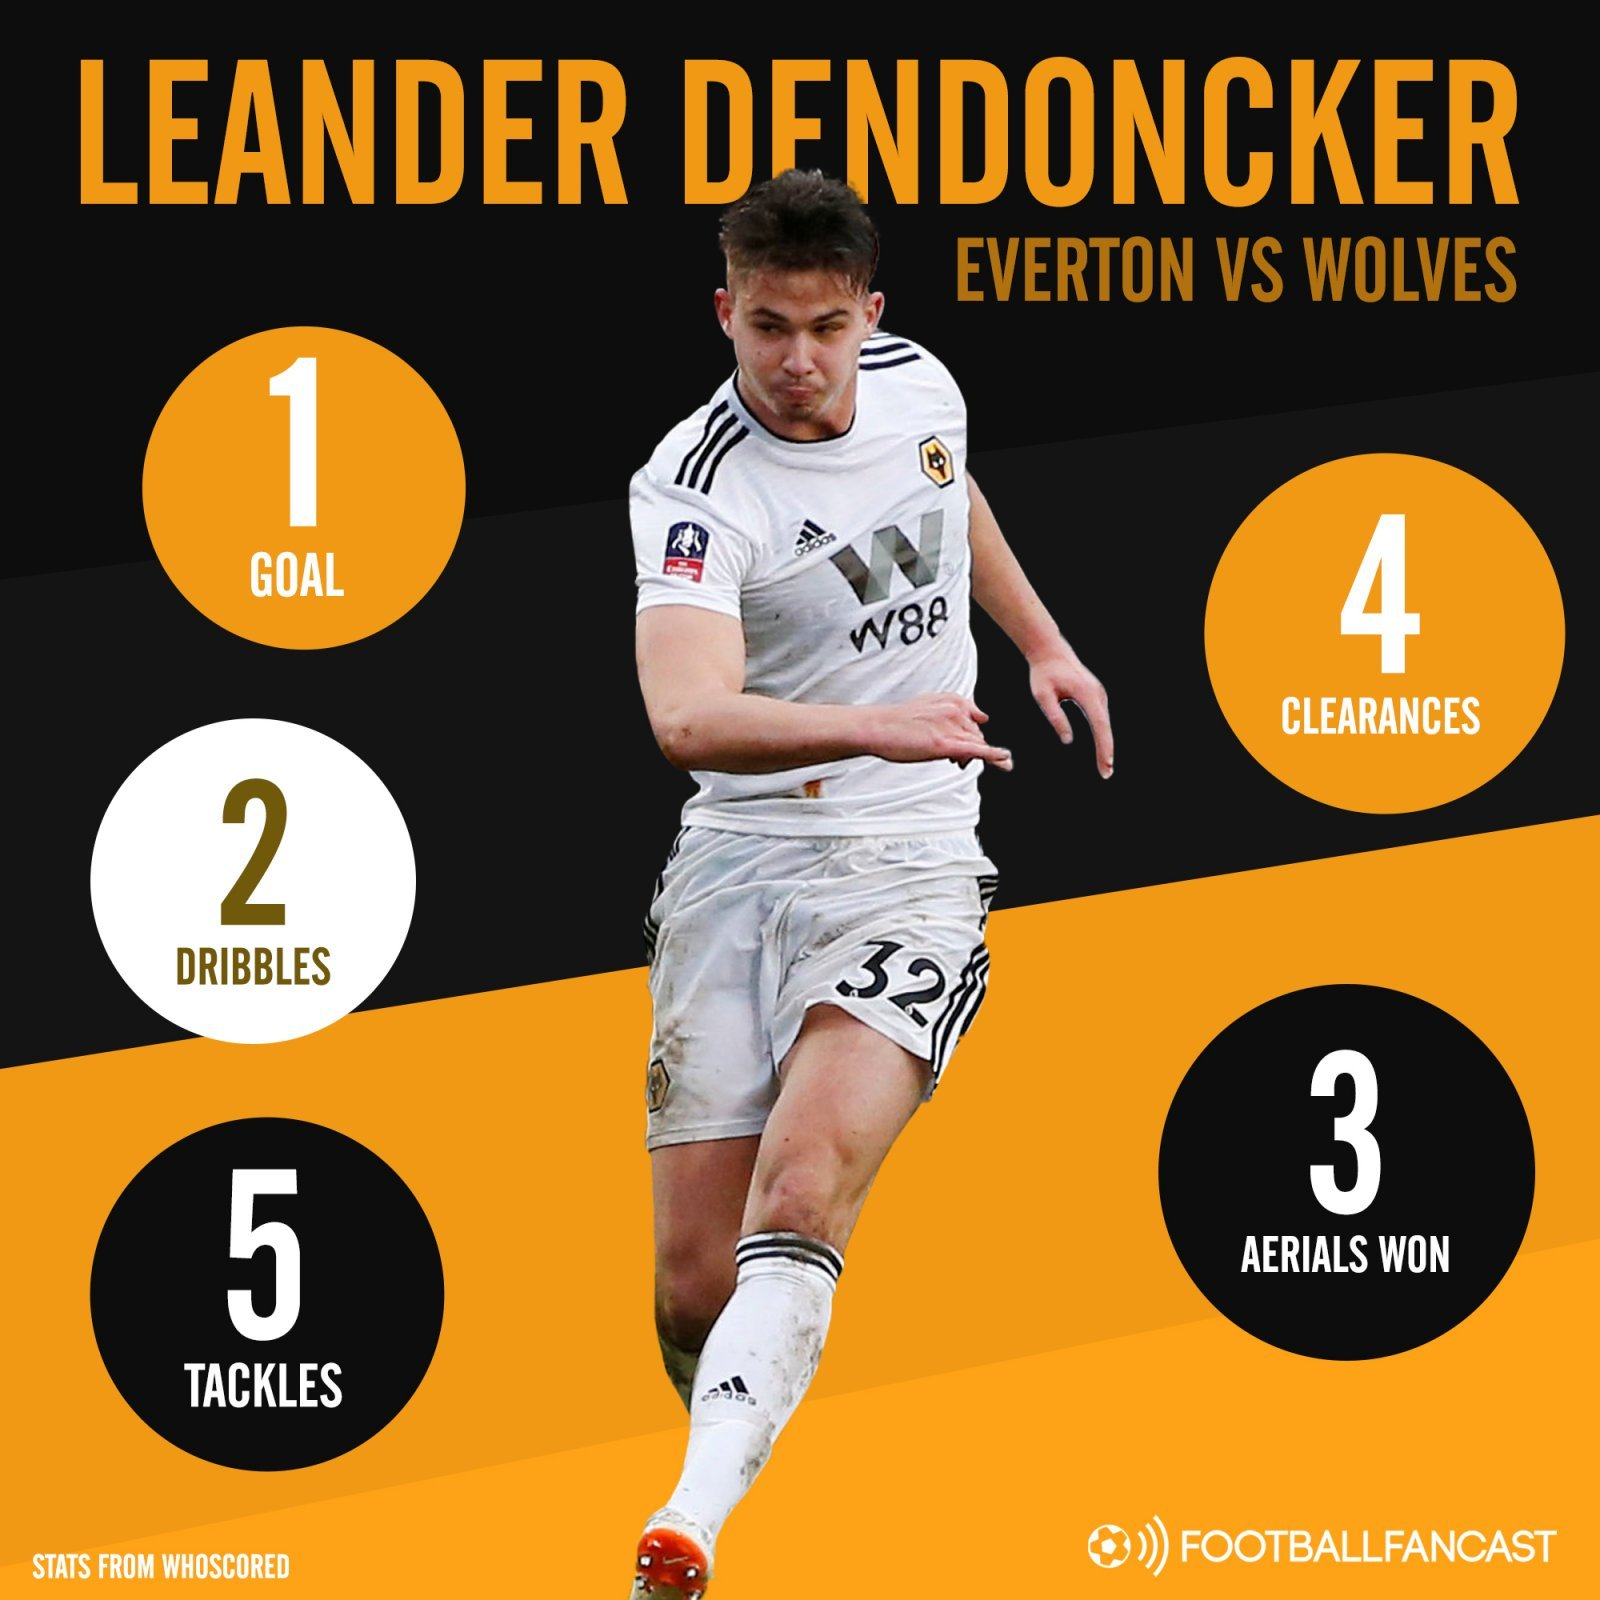 Leander Dendoncker - 5 tackles, 2 dribbles: Surprise Wolves package has come to fore at just the right time for Santo